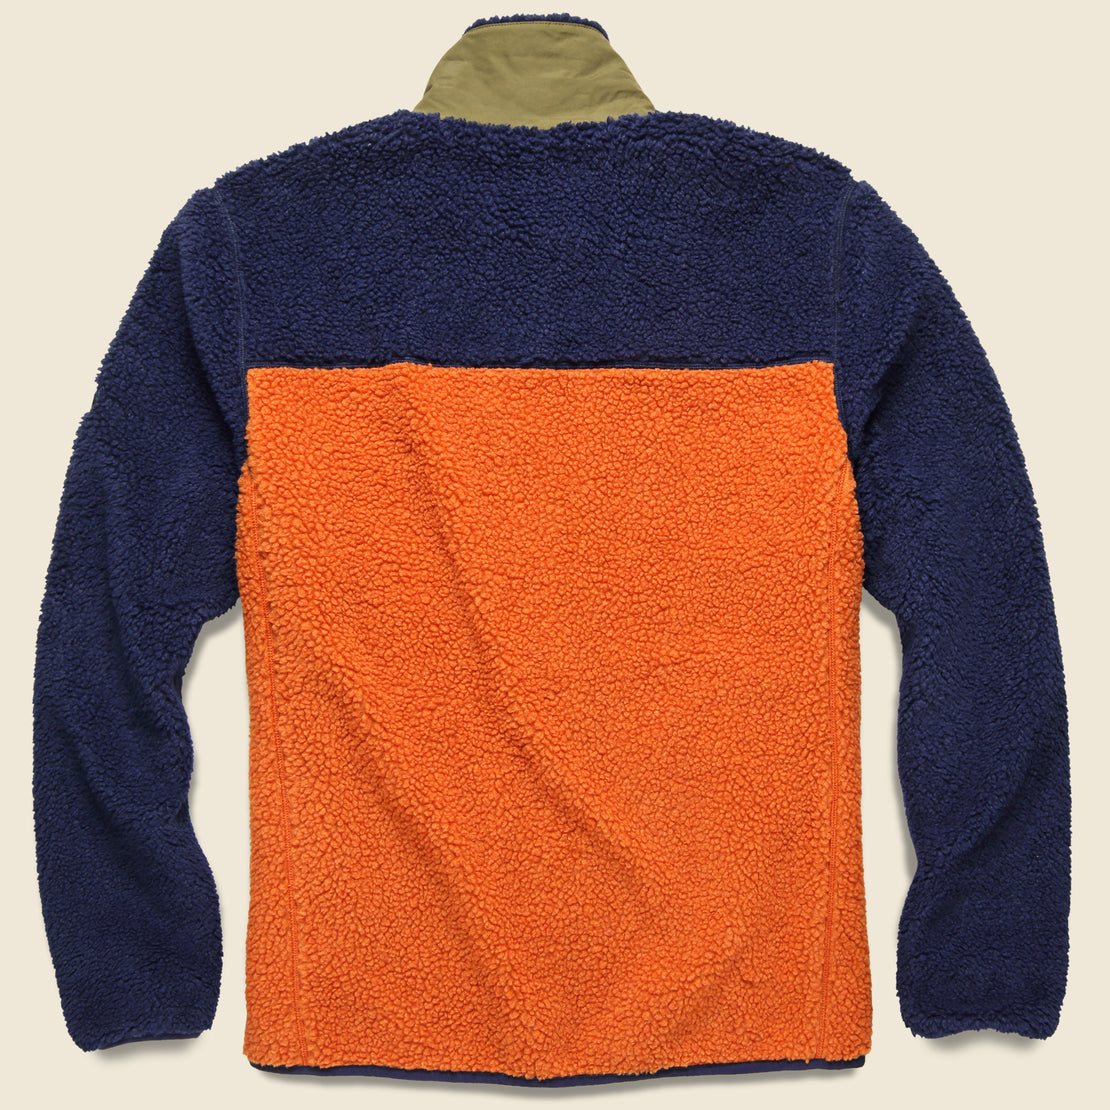 Mattawa Colorblock Fleece Jacket - Outdoor Orange